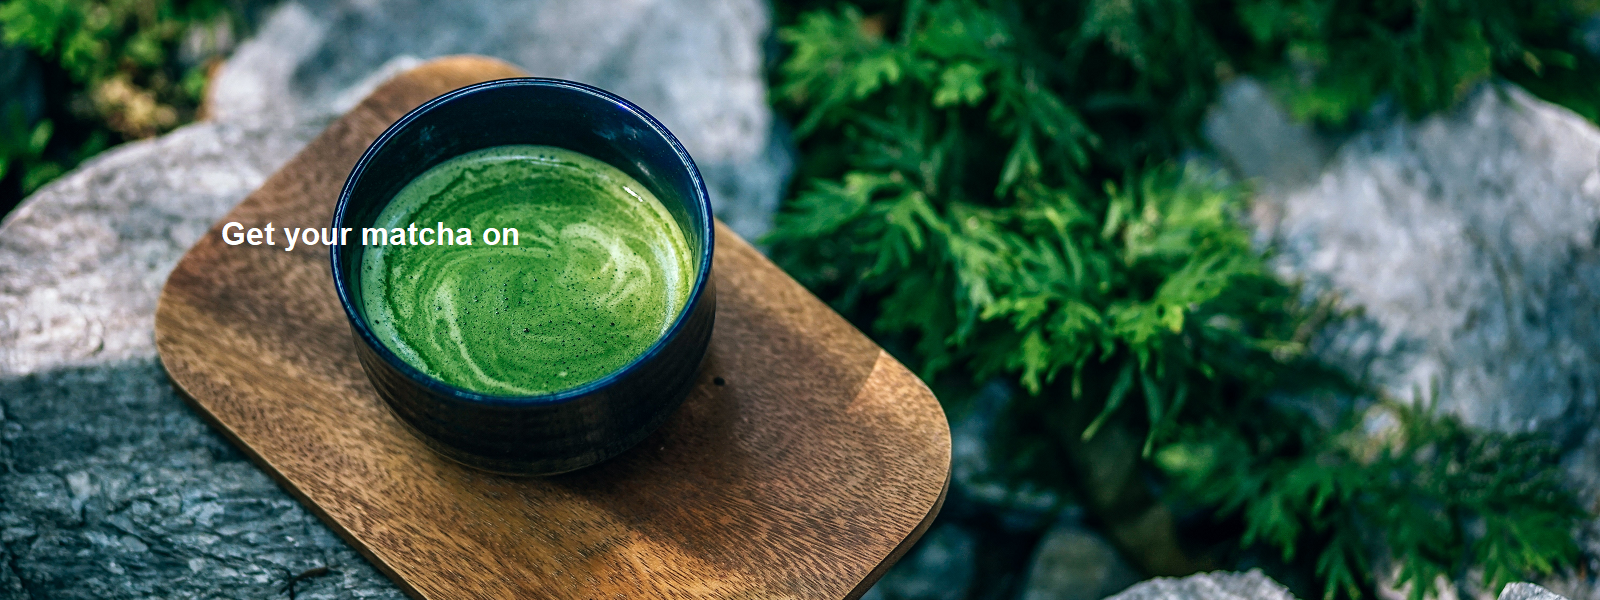 Get your matcha on